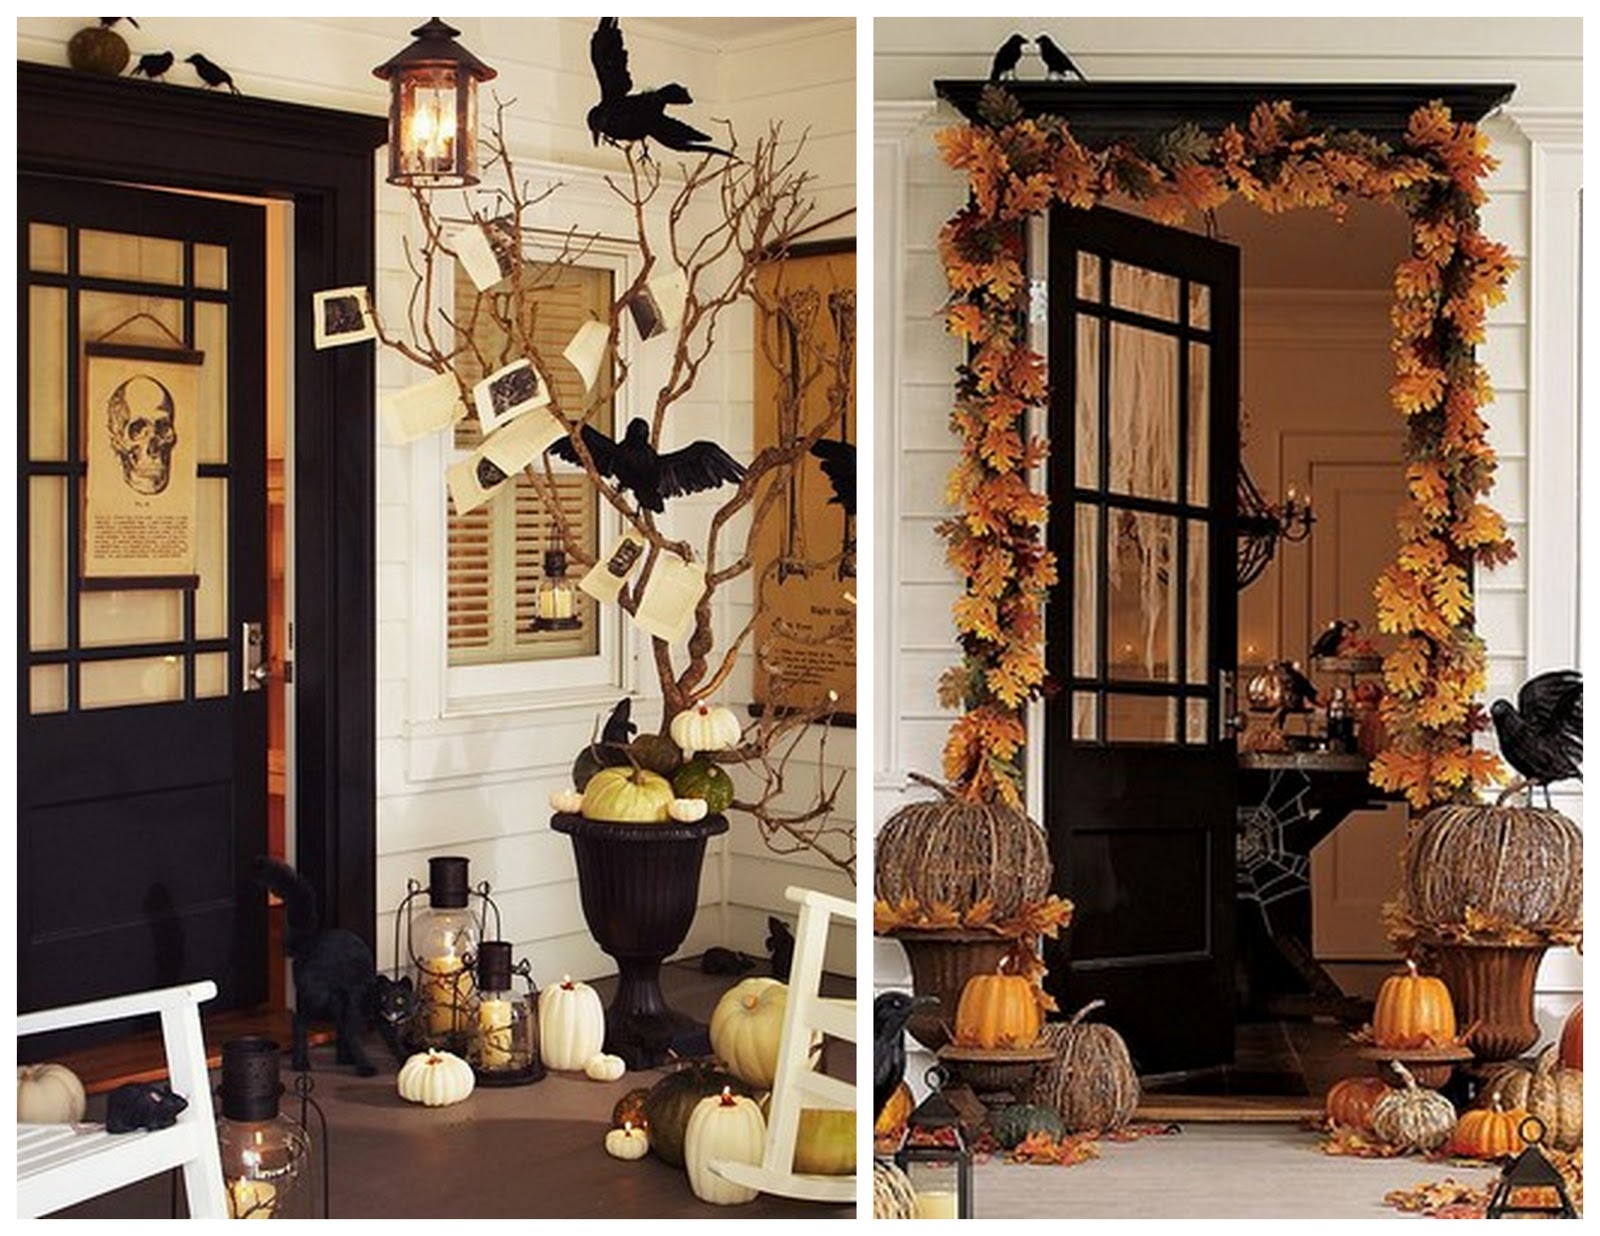 Spanglish chic front porch halloween decoration - Decoracion de entradas de casas ...